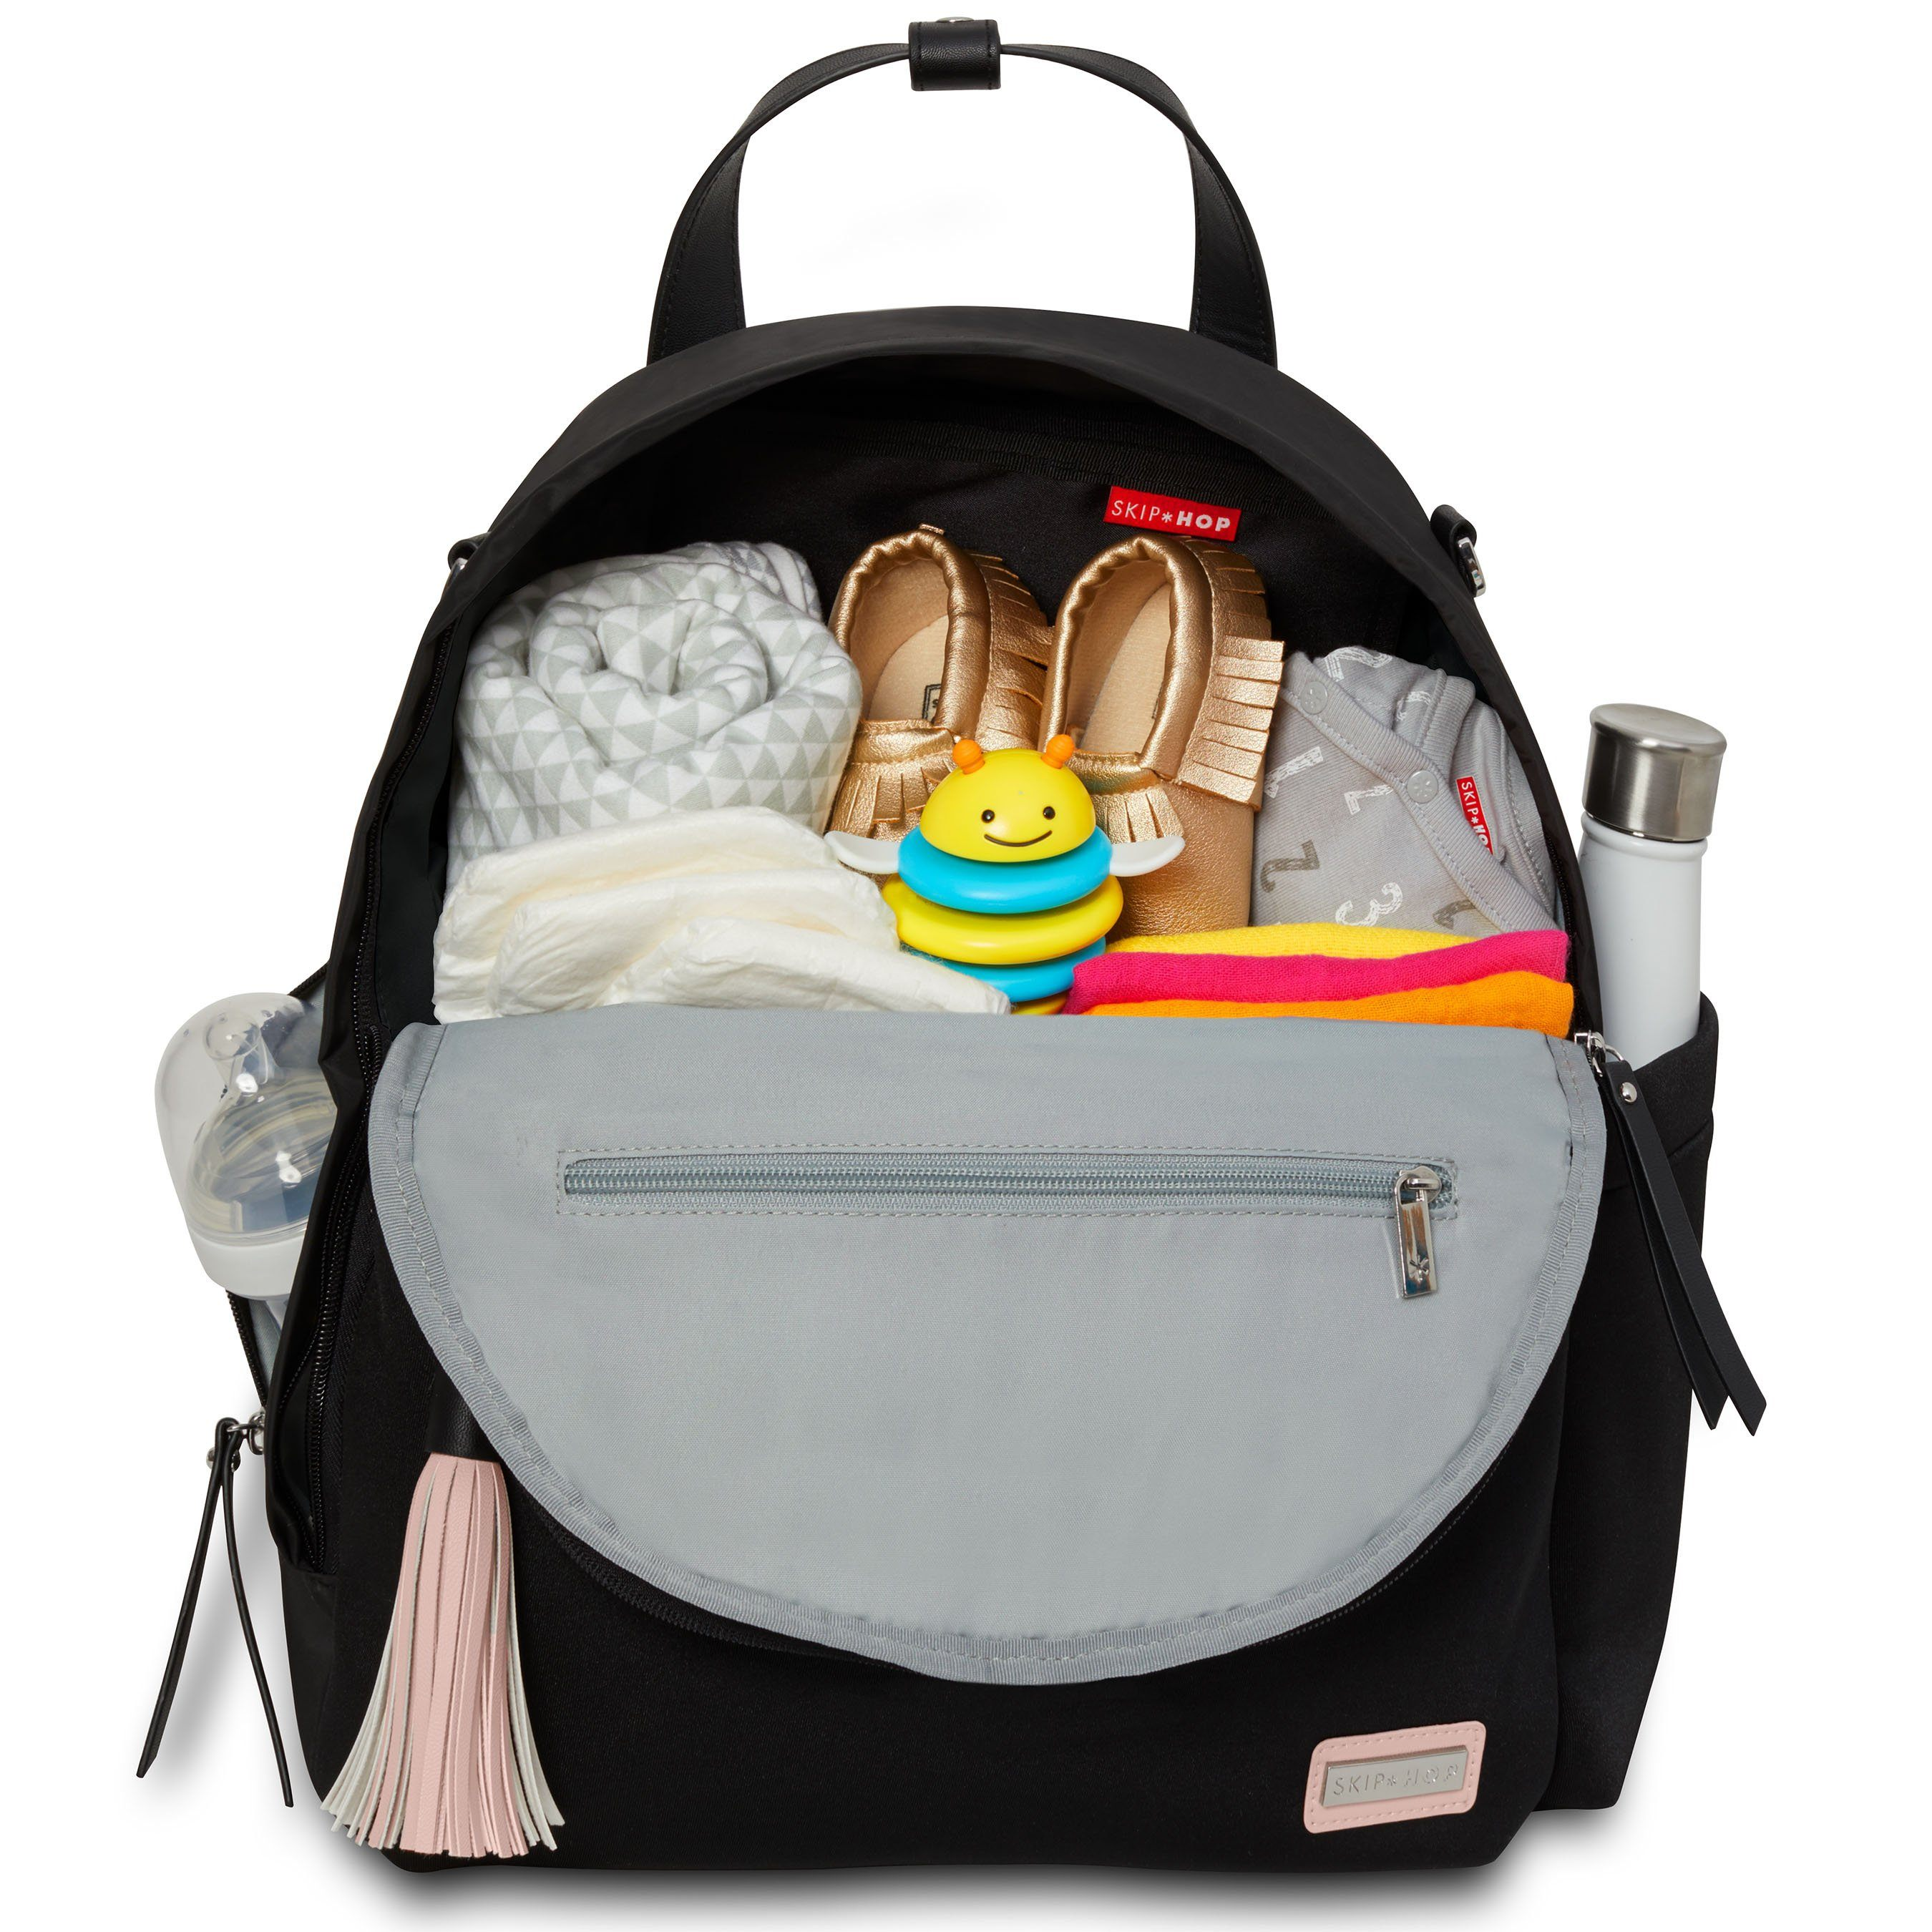 Nolita Neoprene Backpack - Grey - Project Nursery